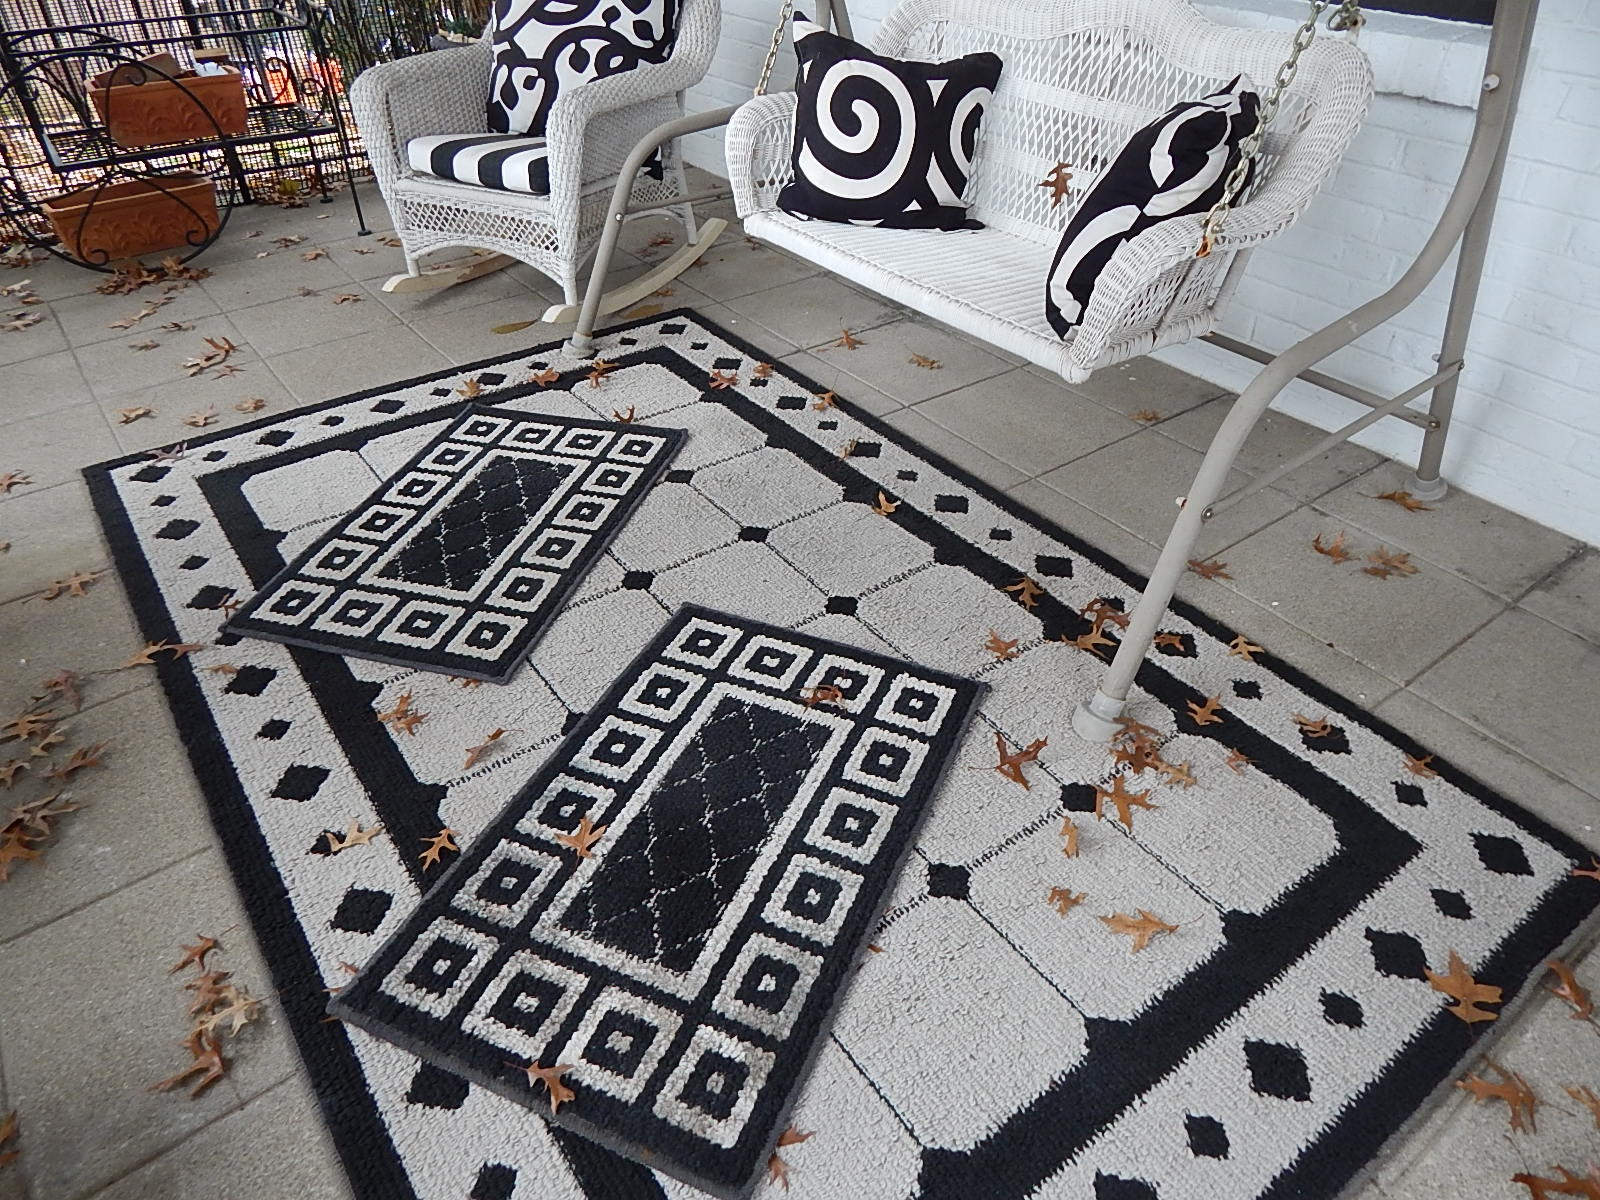 Wicker Chair and Swing with Rugs